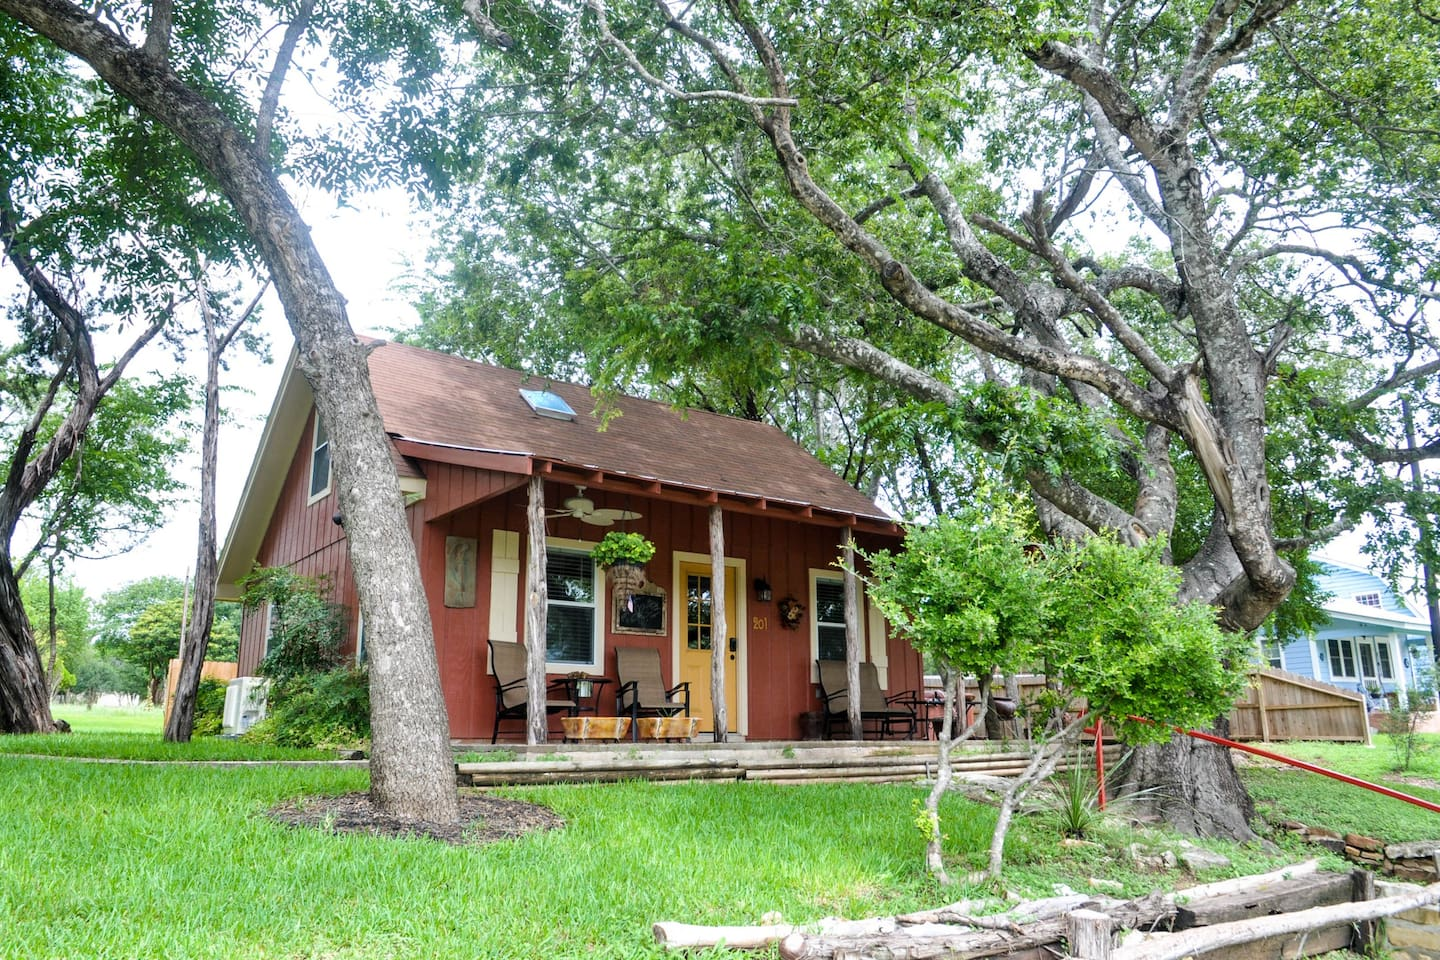 cottage getaway in united a rooms leeway for wimberley cottages cabins sweetheart the texas states rent